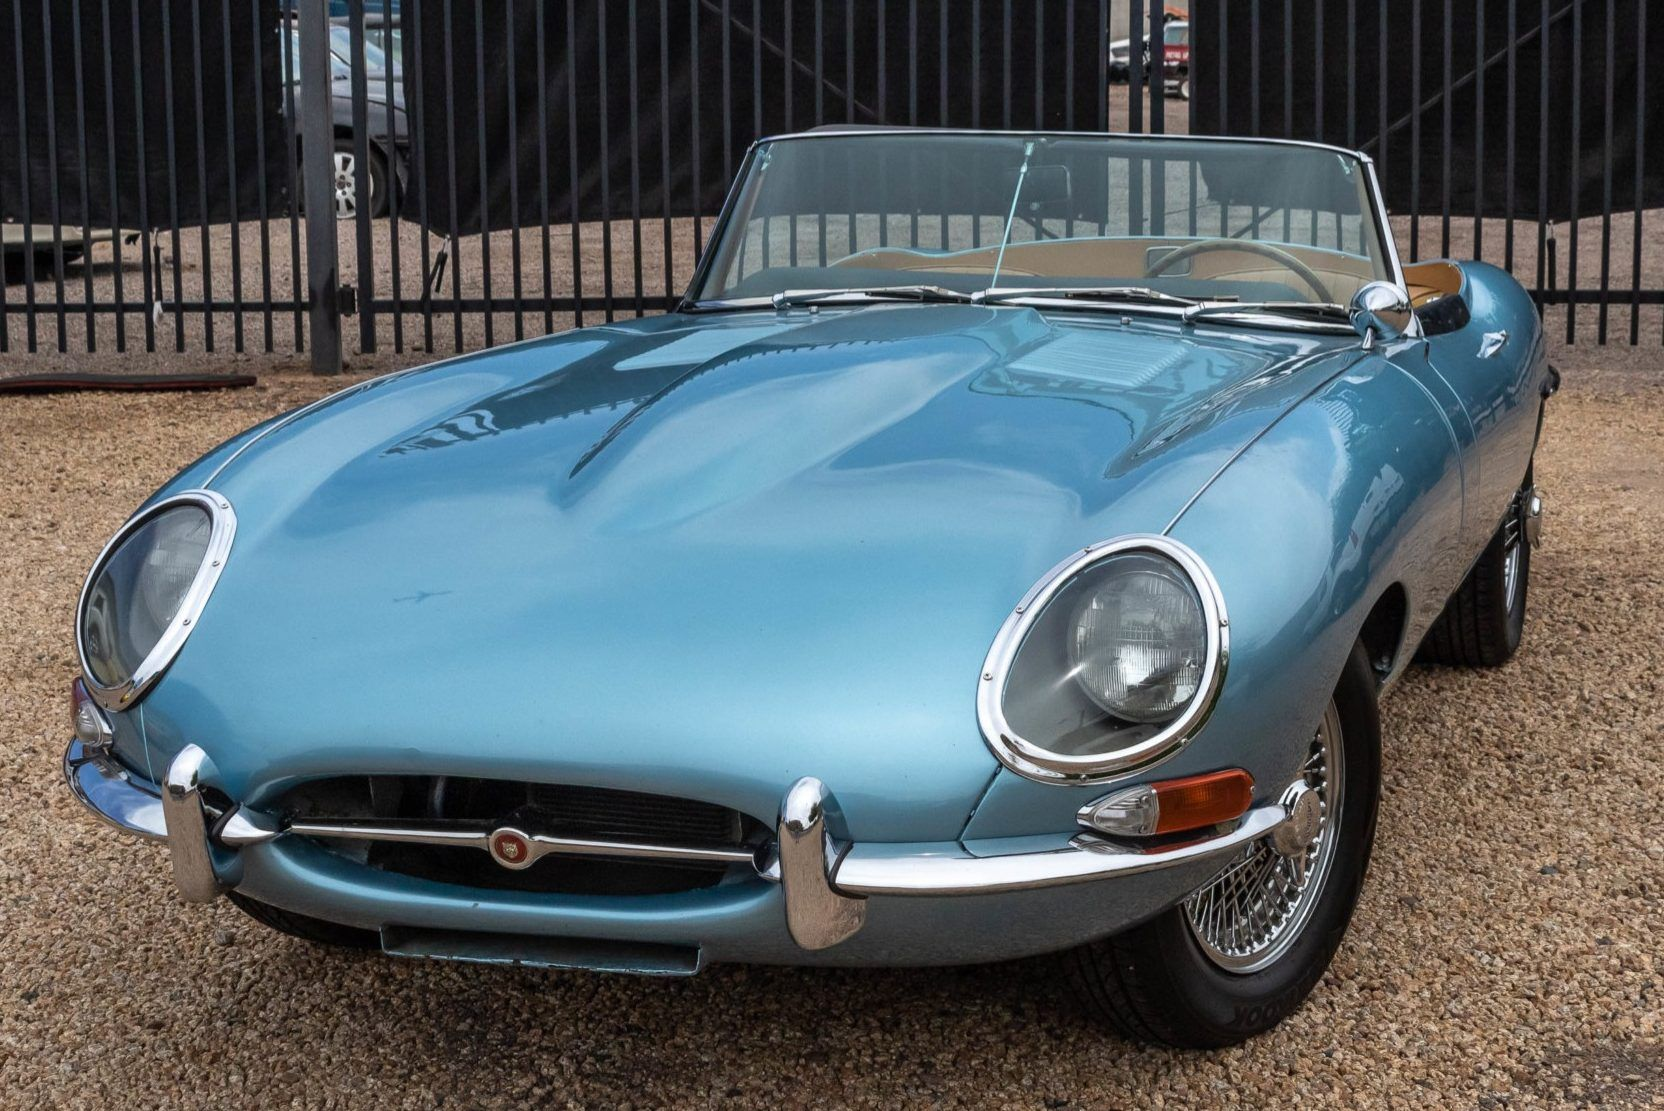 1964 Jaguar XKE Series I 3.8 Roadster